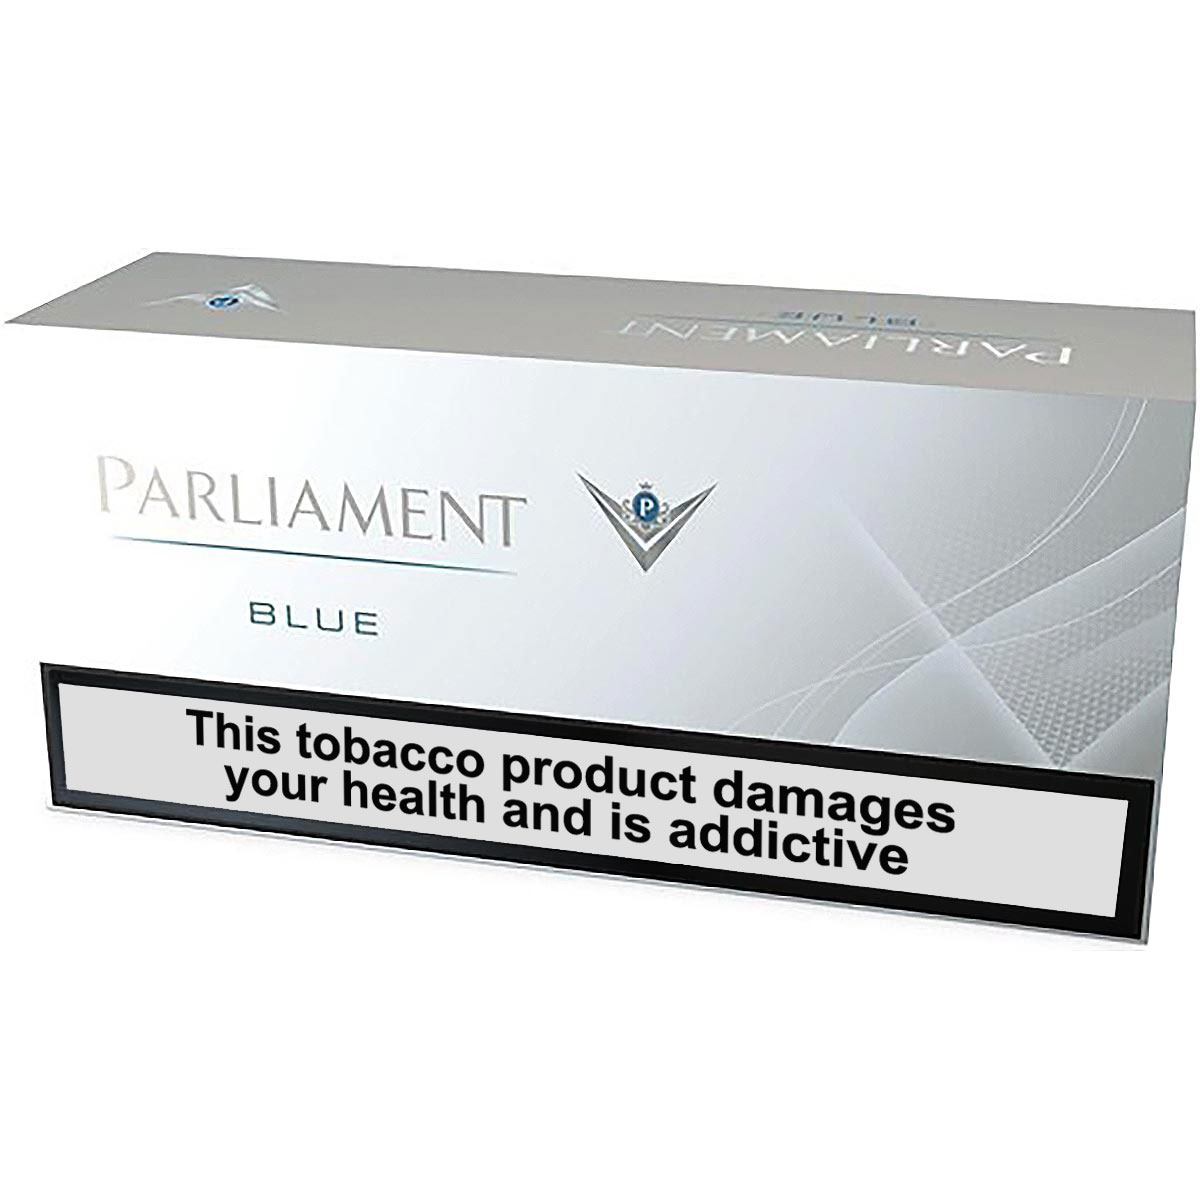 Parliament - Blue Limited Edition